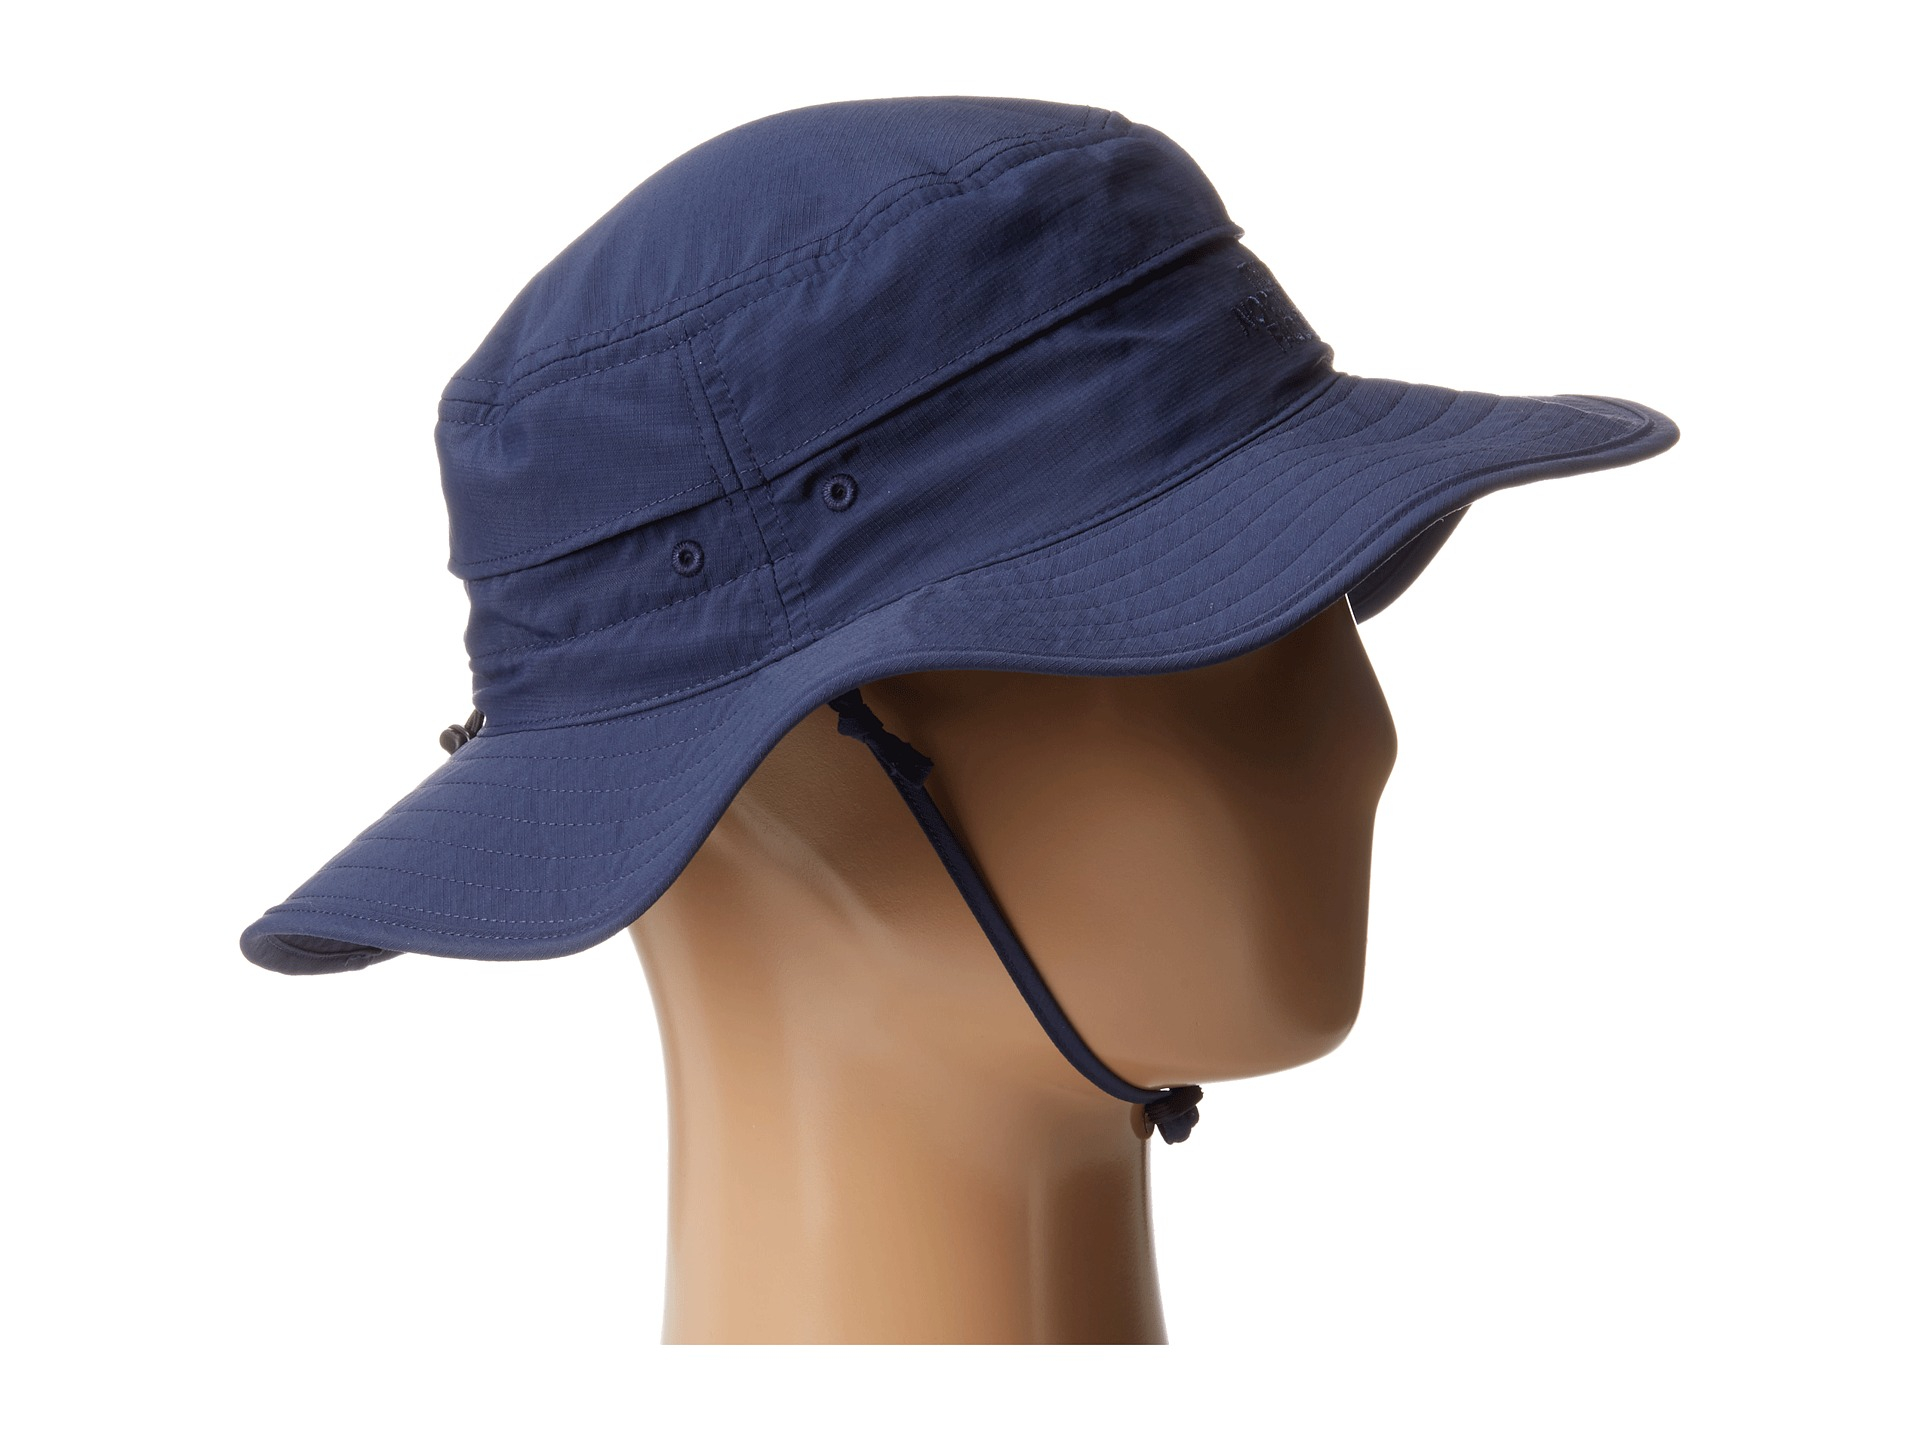 0ed5cff8de4 Lyst - The North Face Horizon Breeze Brimmer Hat in Blue for Men